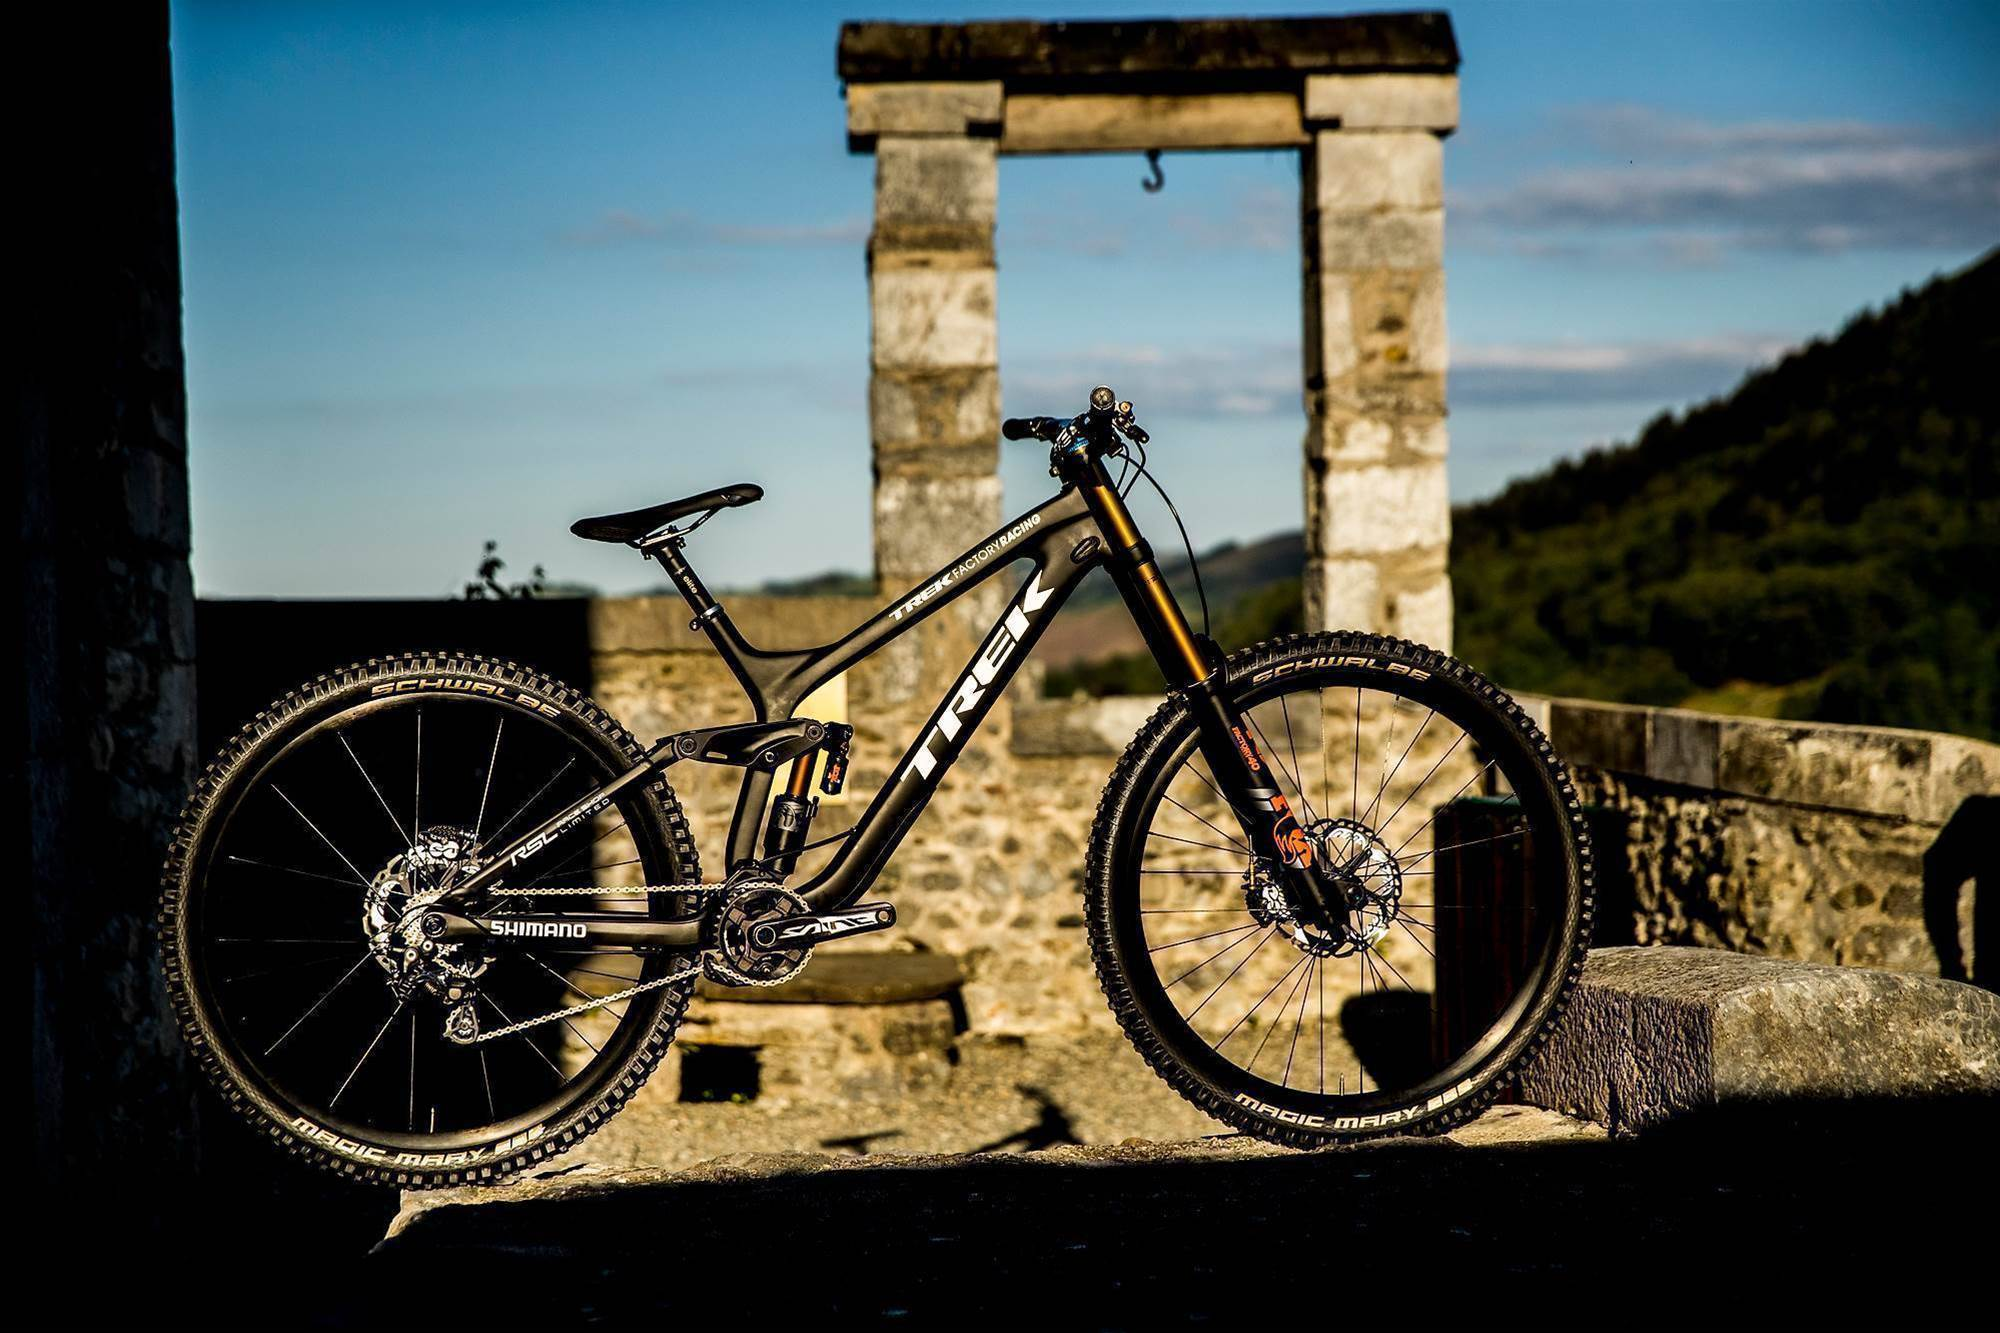 Trek go big with the new Session 9.9